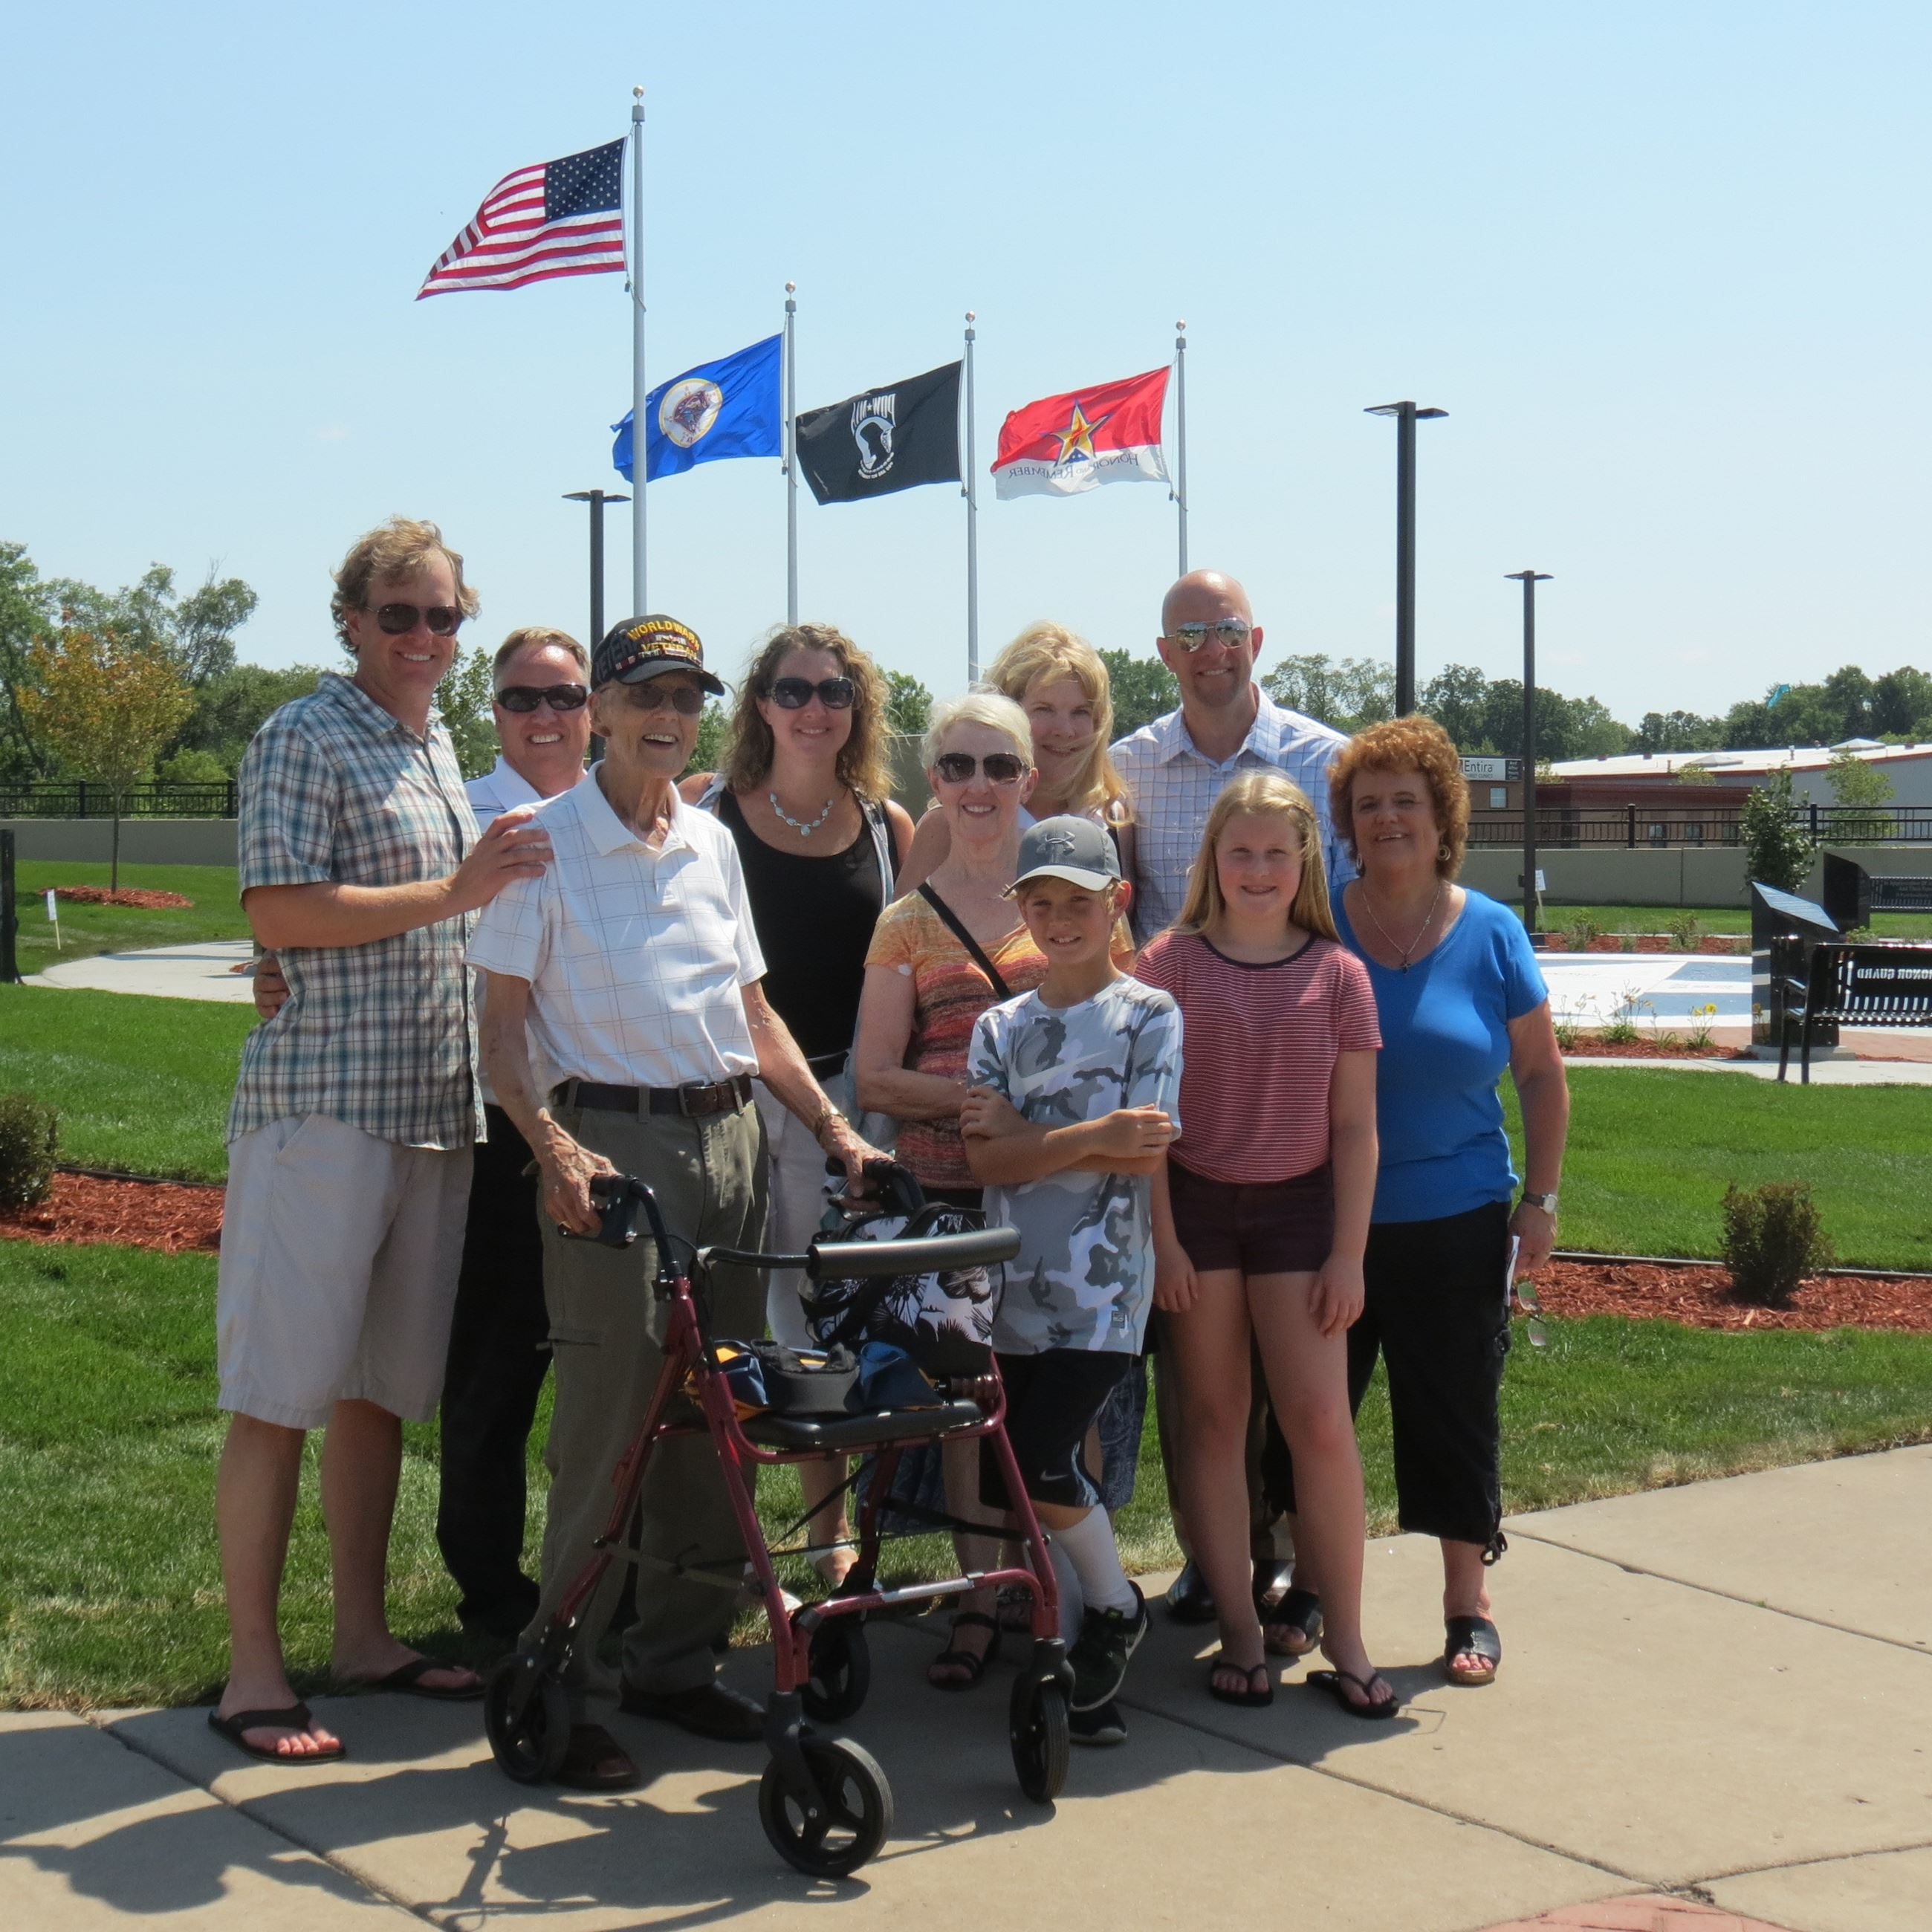 Ellsworth Erickson & Family - Ellsworth a WWII Air Corps Veteran, envisioned a memorial